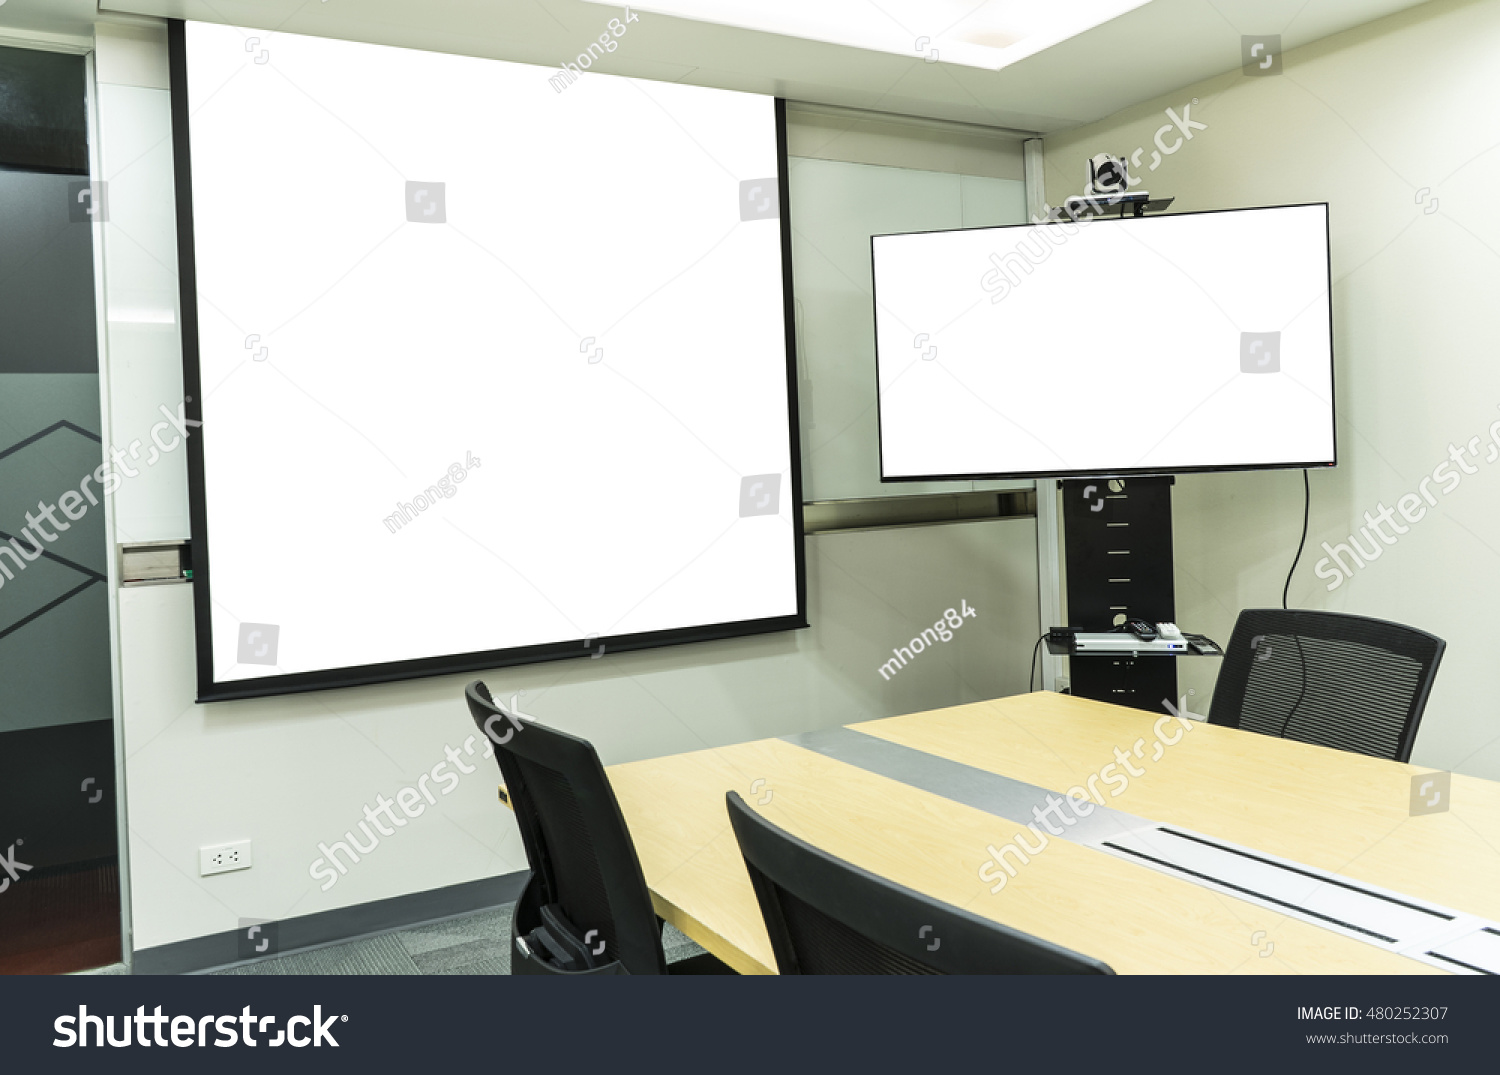 projection projector screen kc screens hd rental product vancouver room x